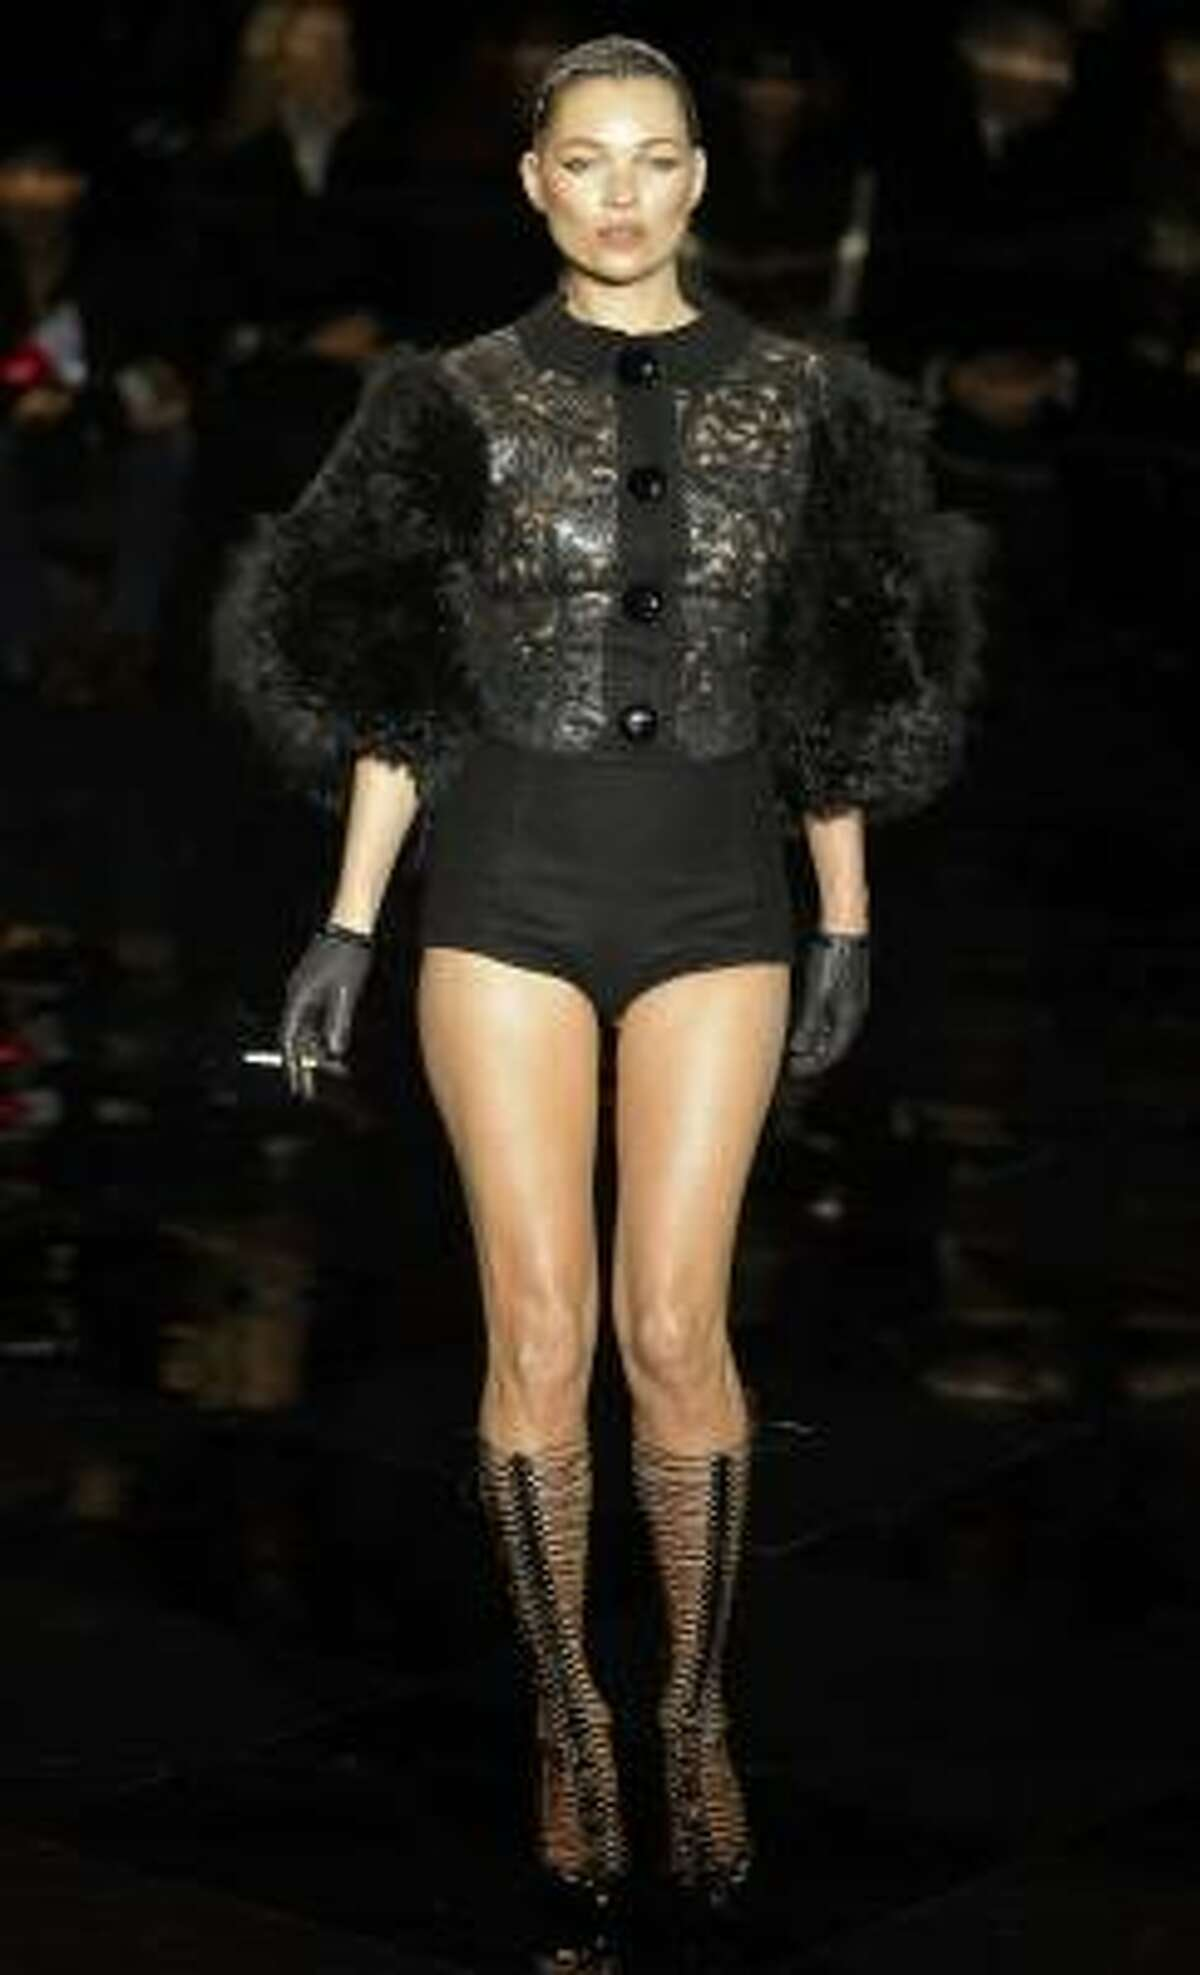 British model Kate Moss in Marc Jacobs for Louis Vuitton